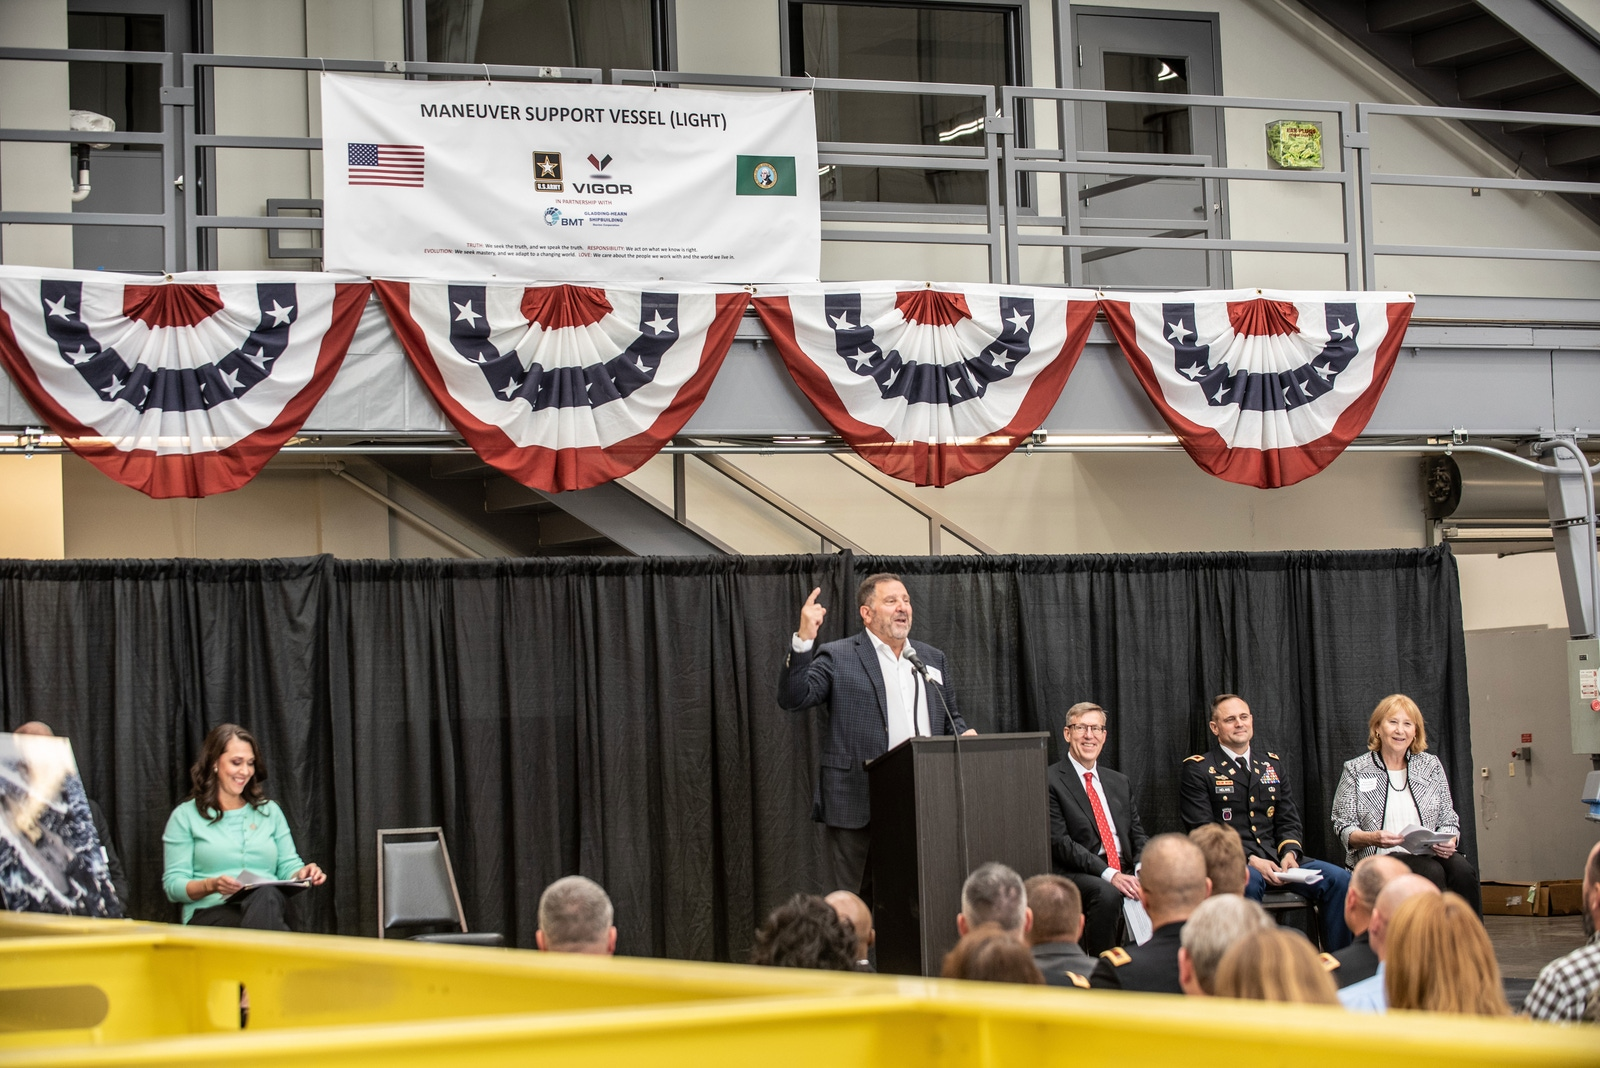 Construction begins for US Army's next generation landing craft